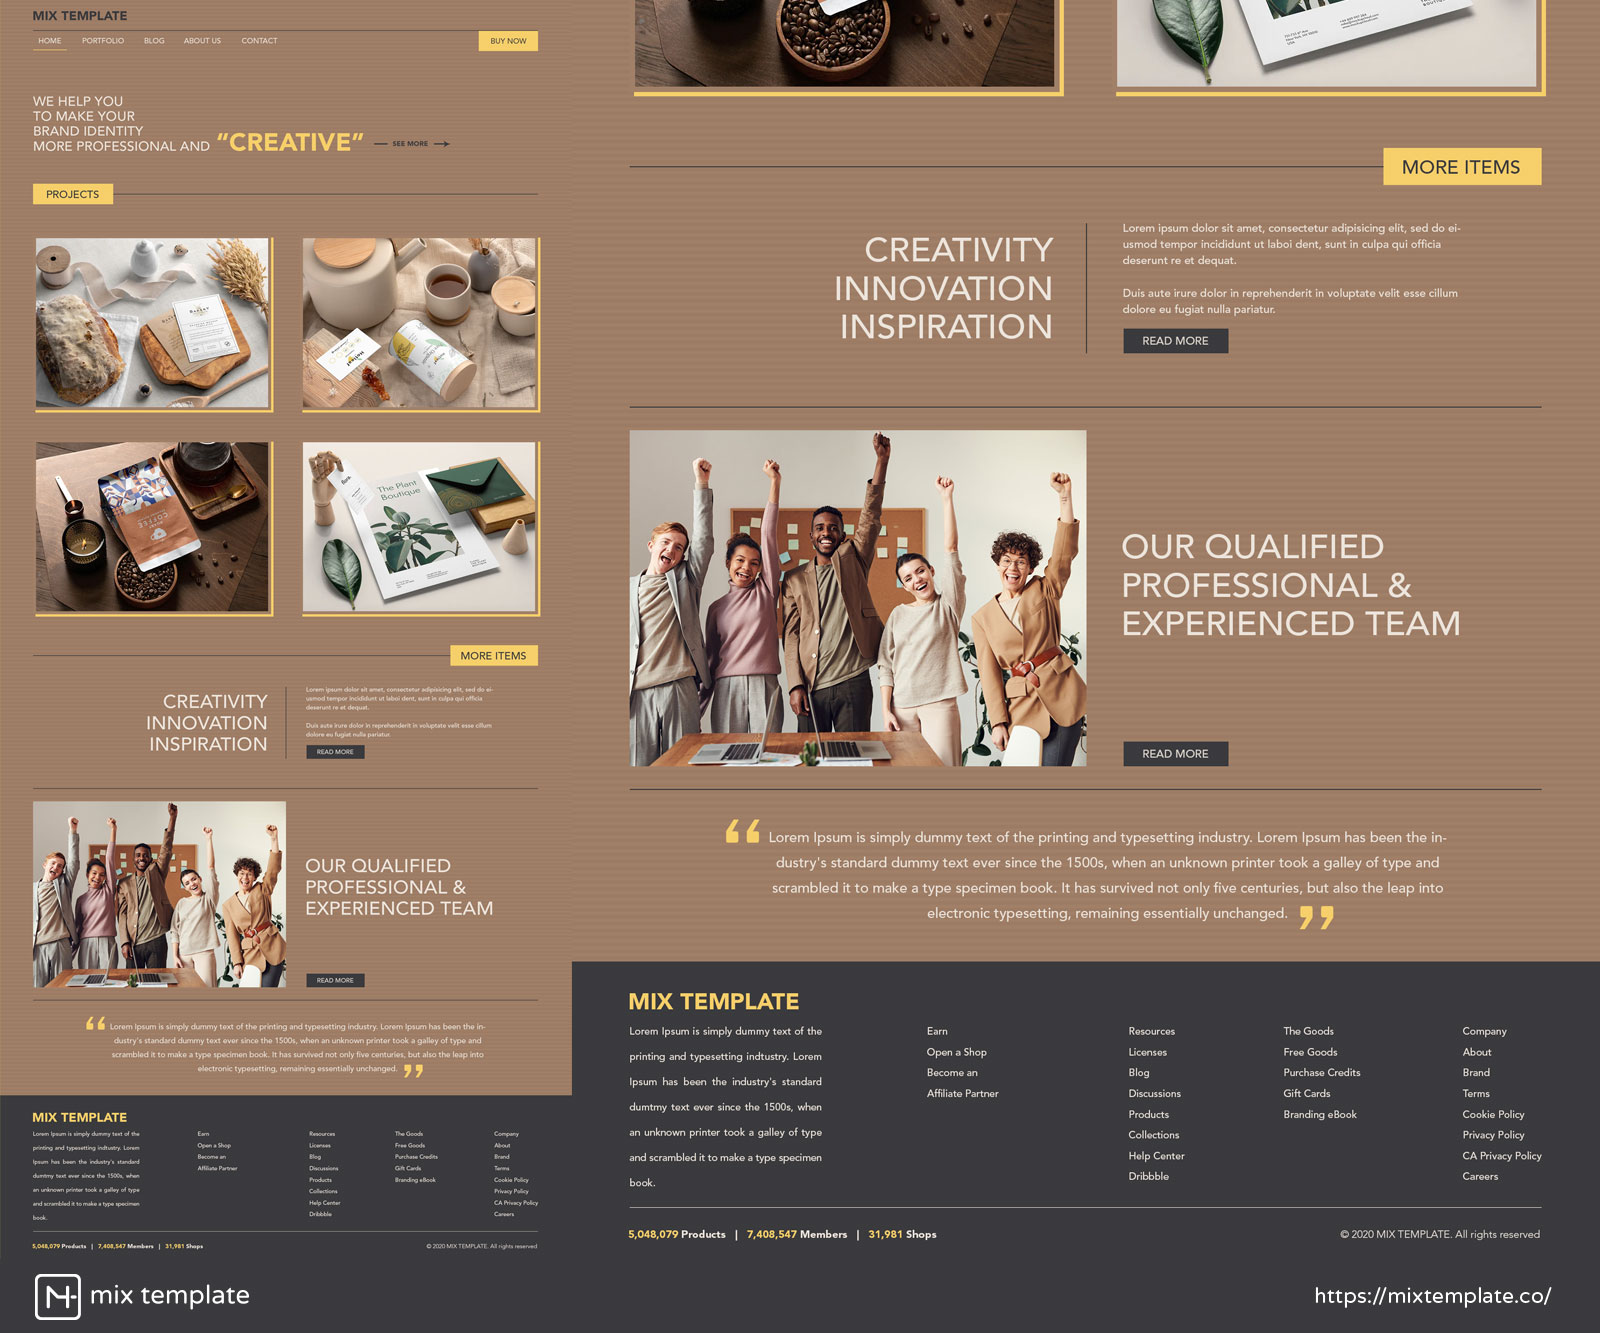 Free-Creative-Graphics-Agency-Website-PSD-Template-38